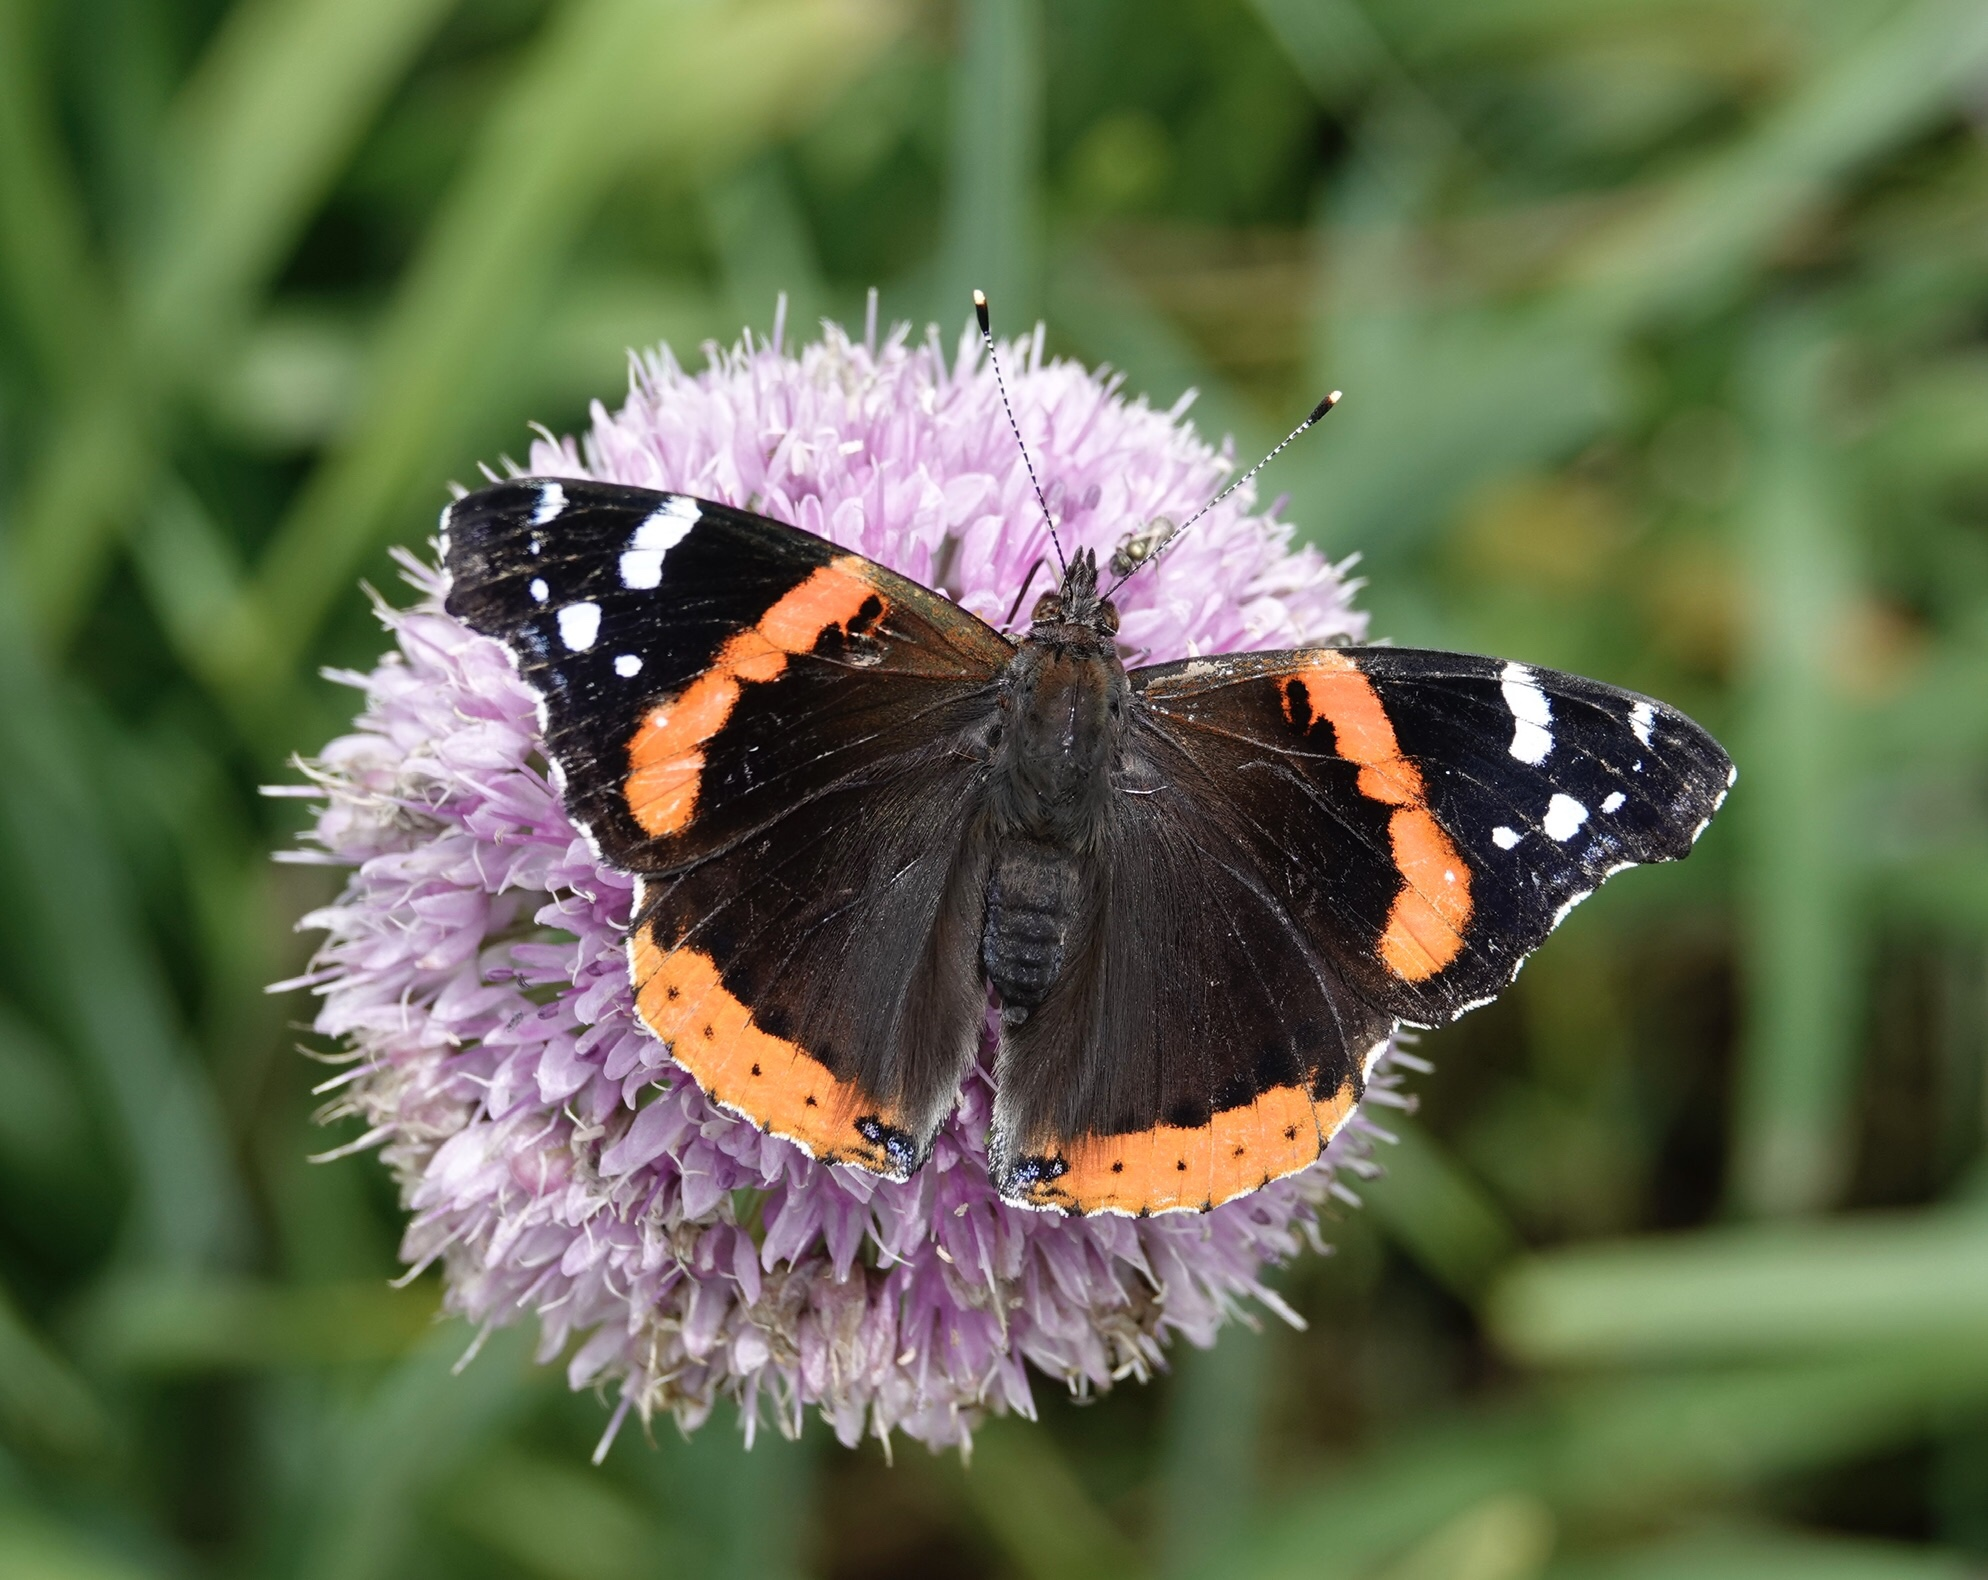 Male red admiral butterflies are said to defend territories in sunny edges and clearings.